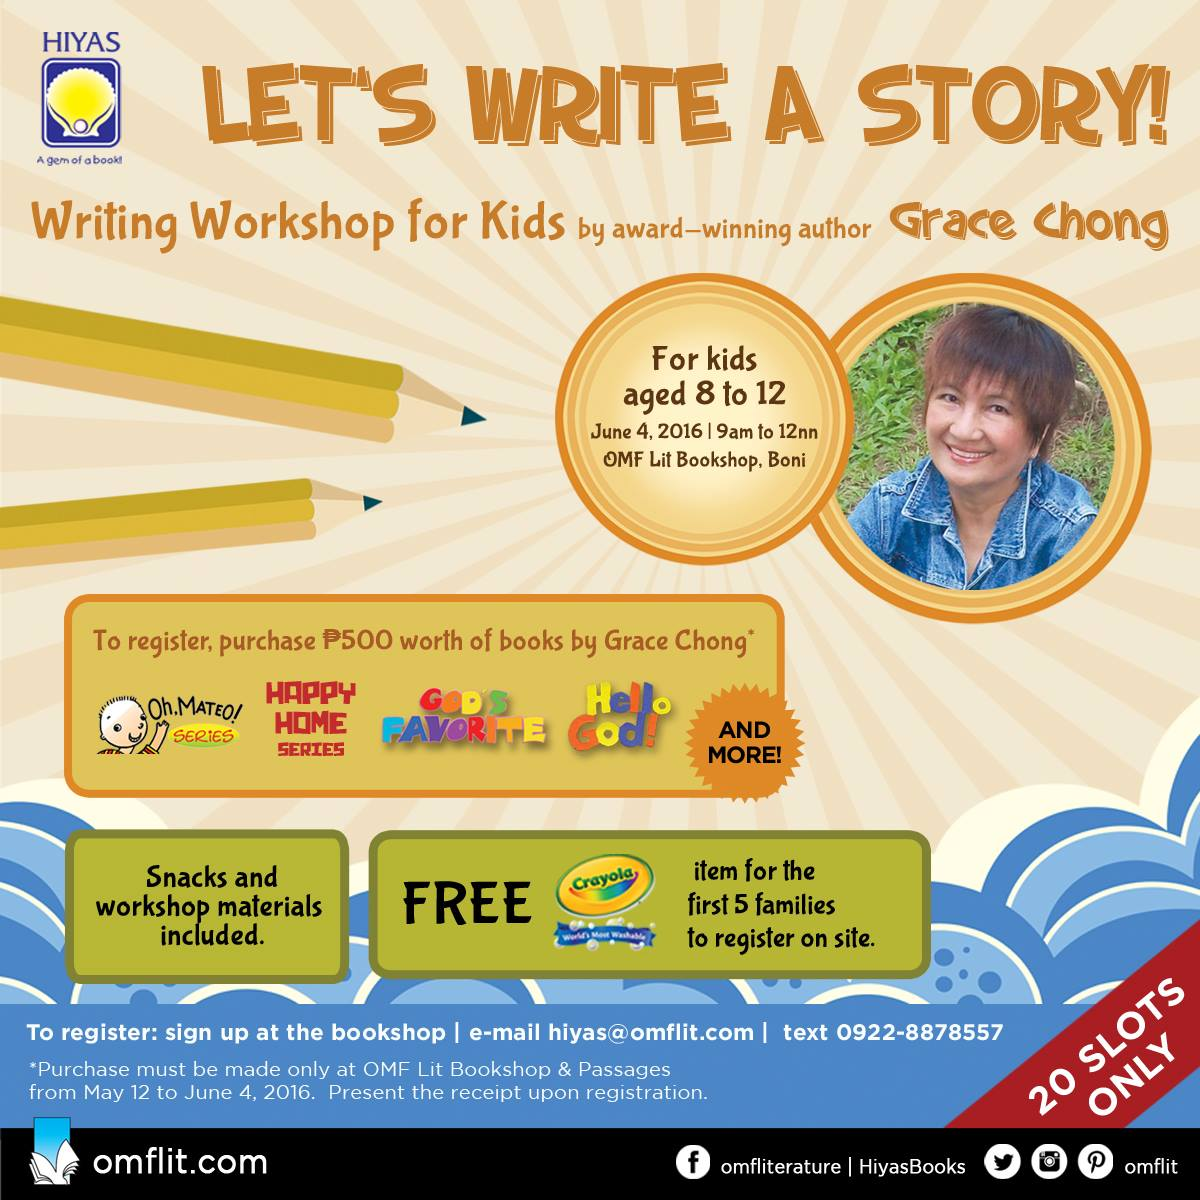 Writing Workshop for kids by Grace Chong